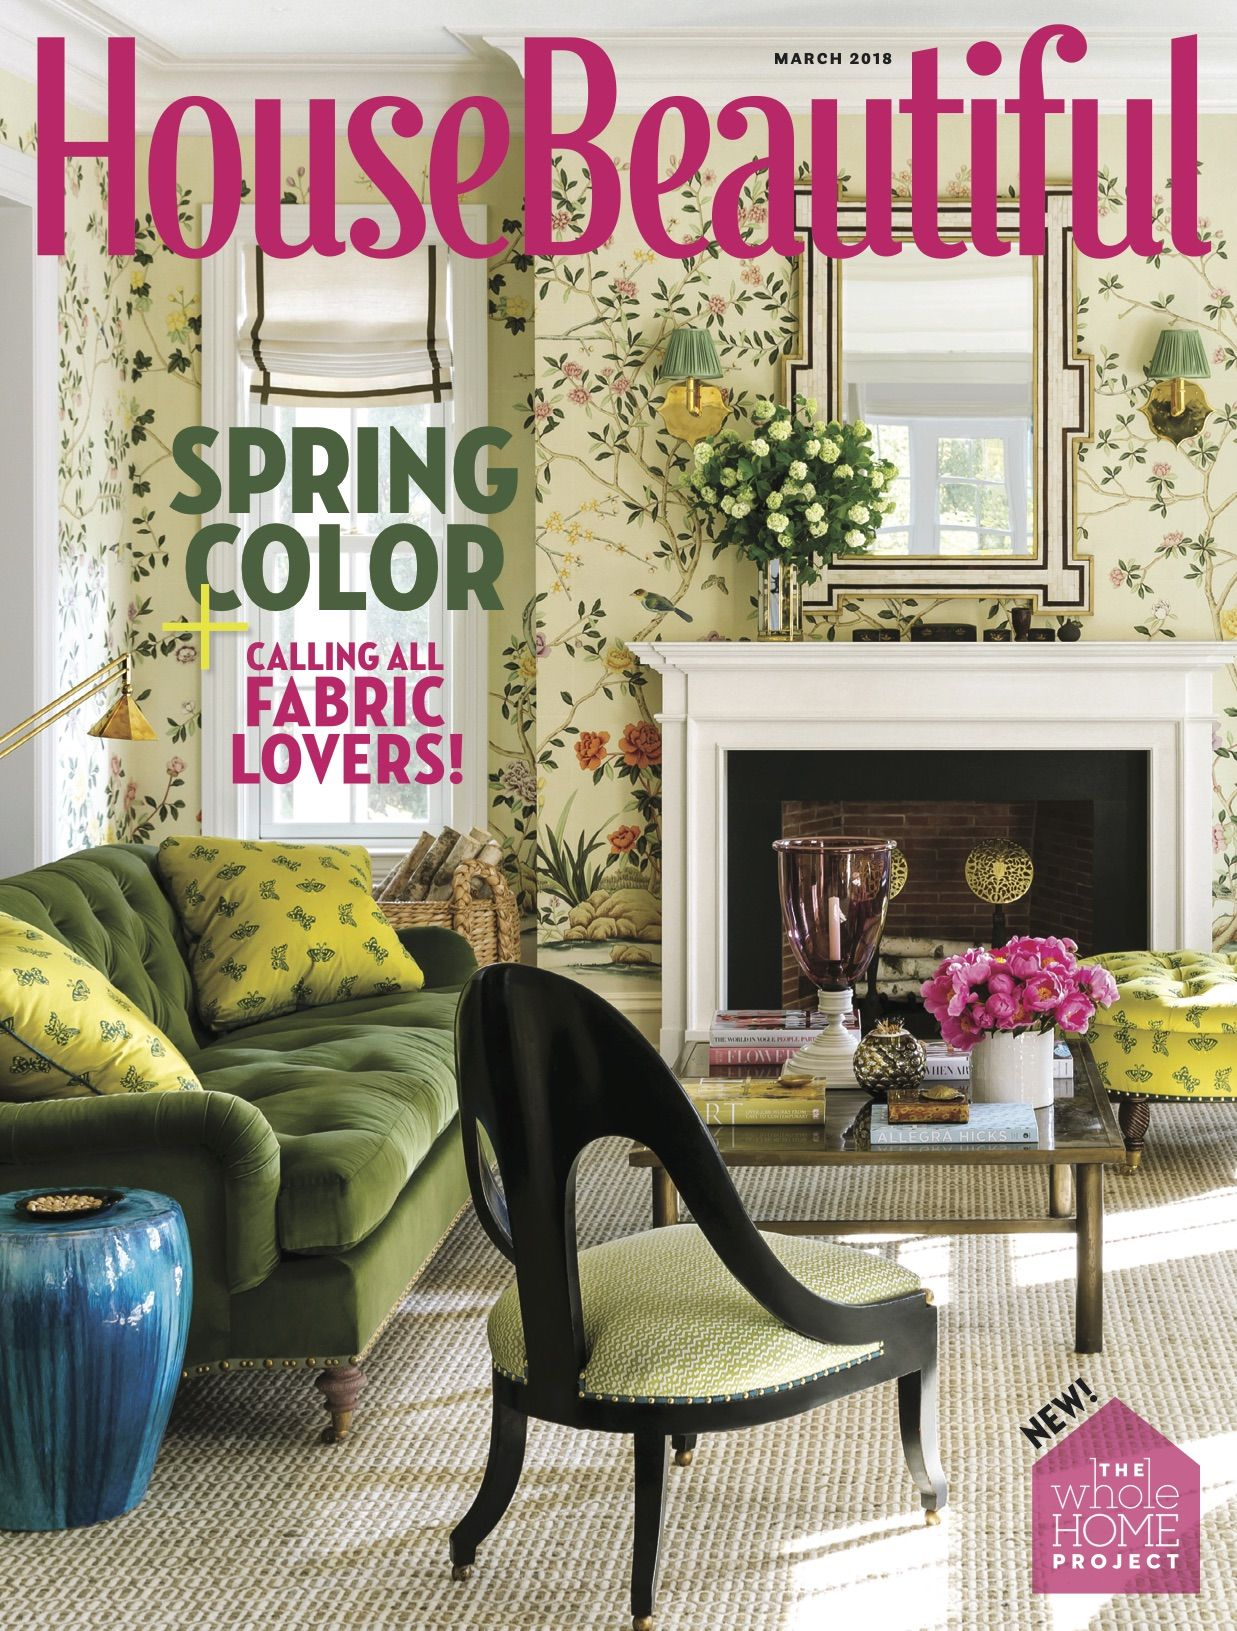 Superb House Beautiful March 2018